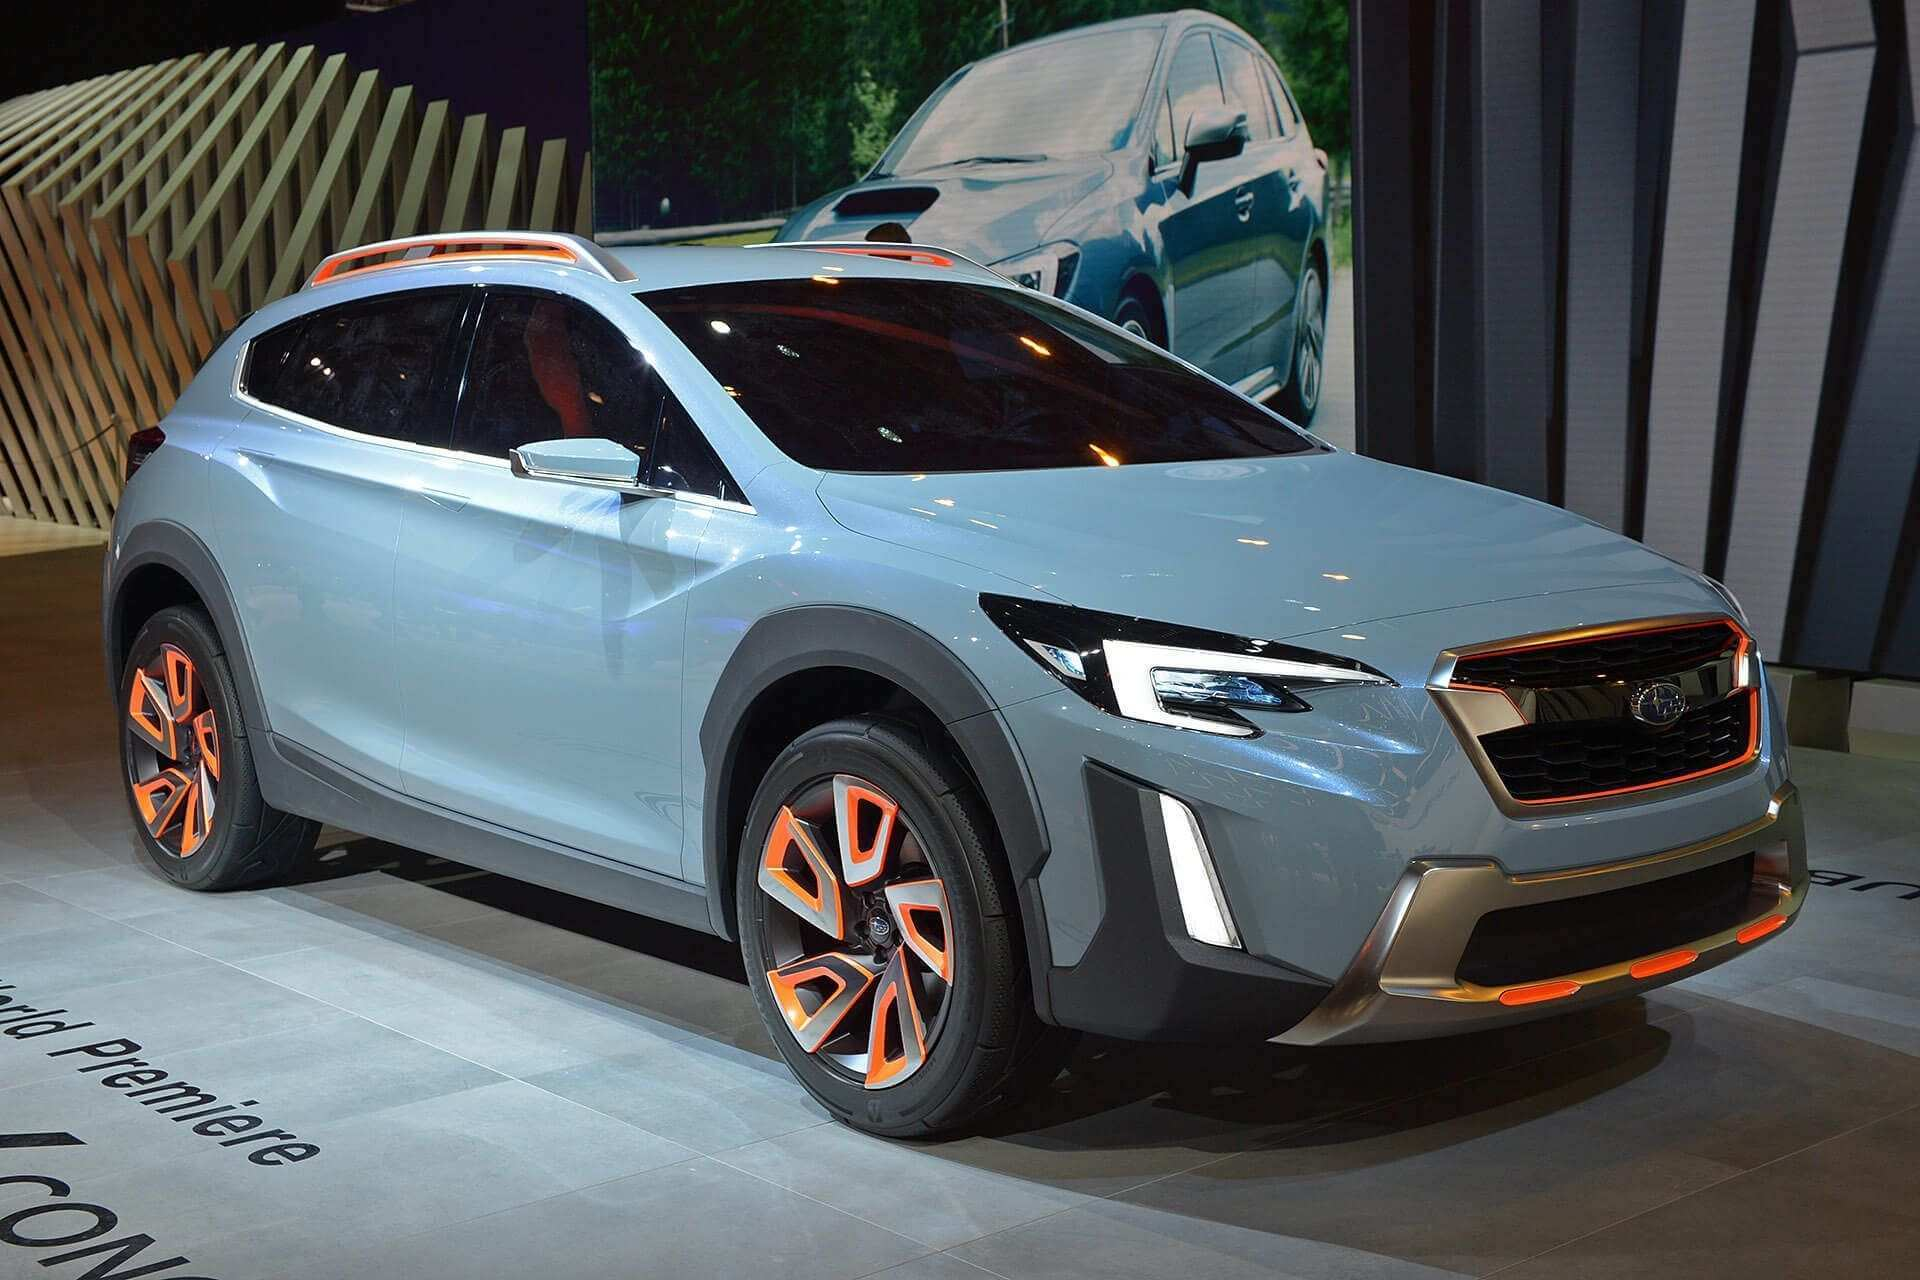 39 Concept of 2020 Subaru Crosstrek Specs with 2020 Subaru Crosstrek